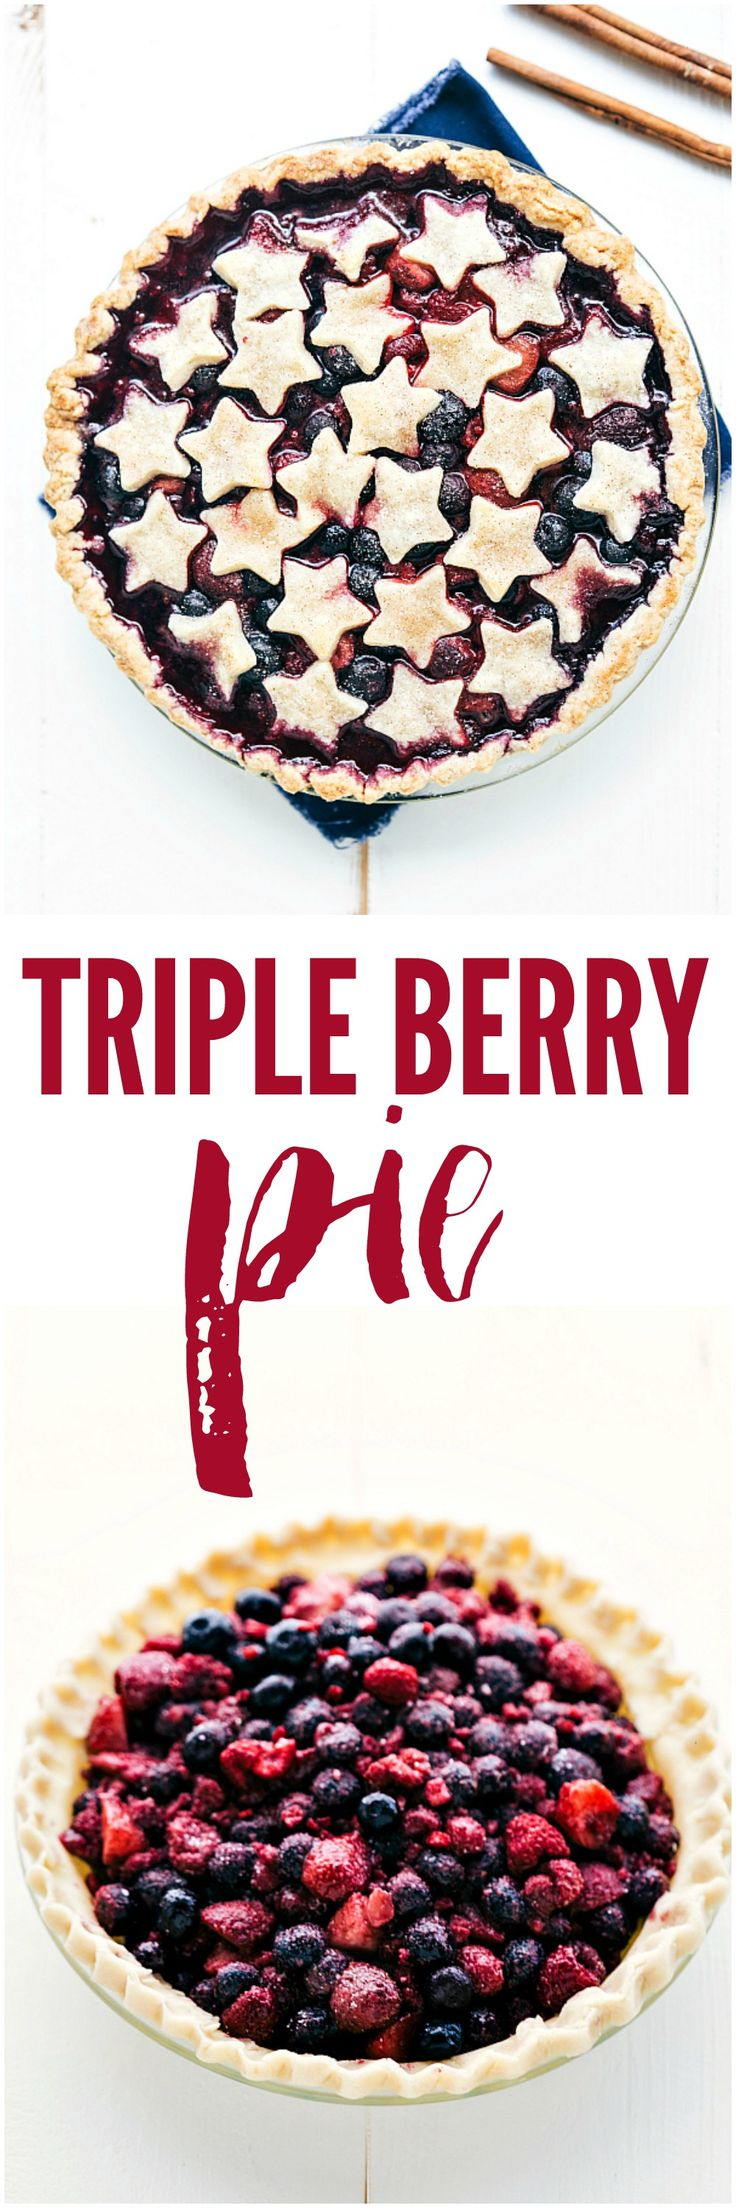 Triple Berry Pie - A patriotic fourth-of-July triple berry pie made simple with easy ingredients!